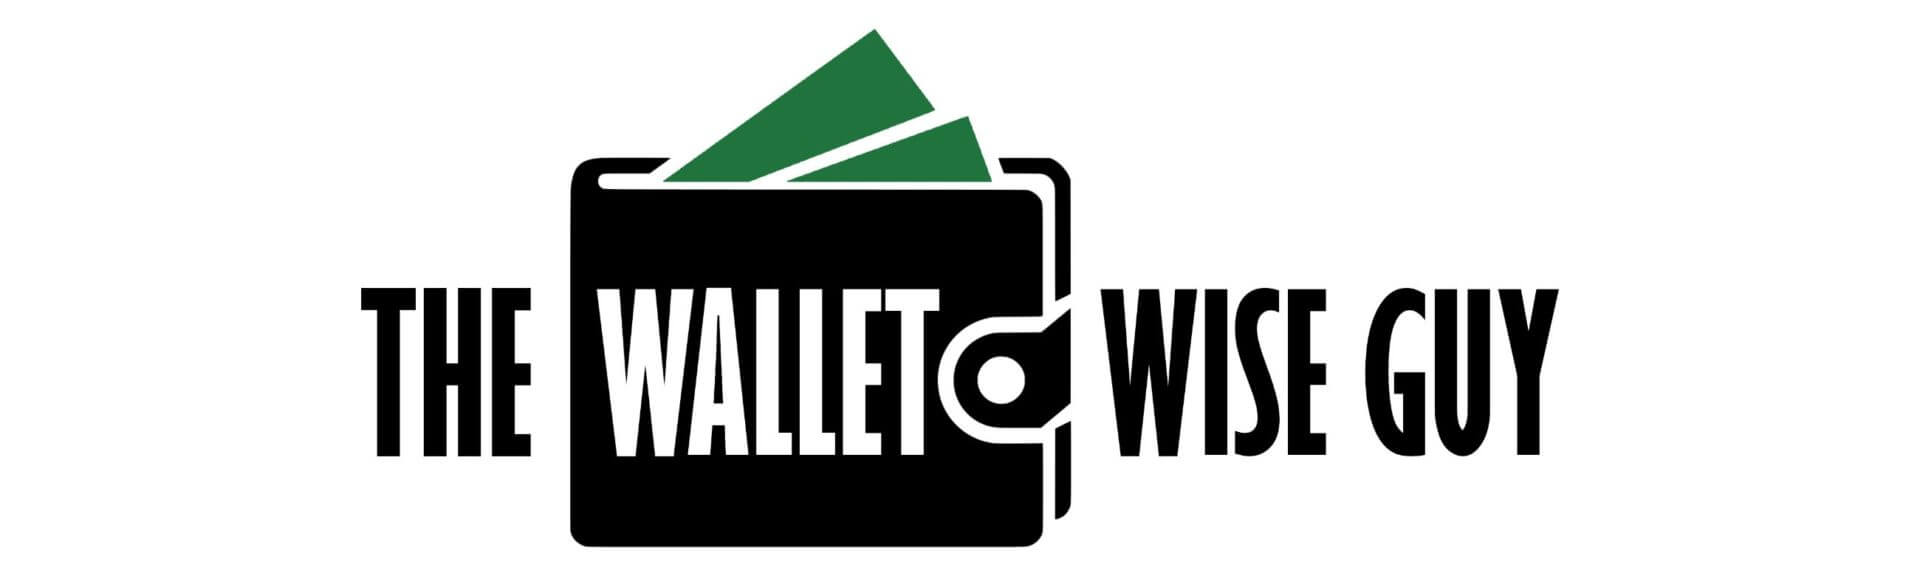 The Wallet Wise Guy